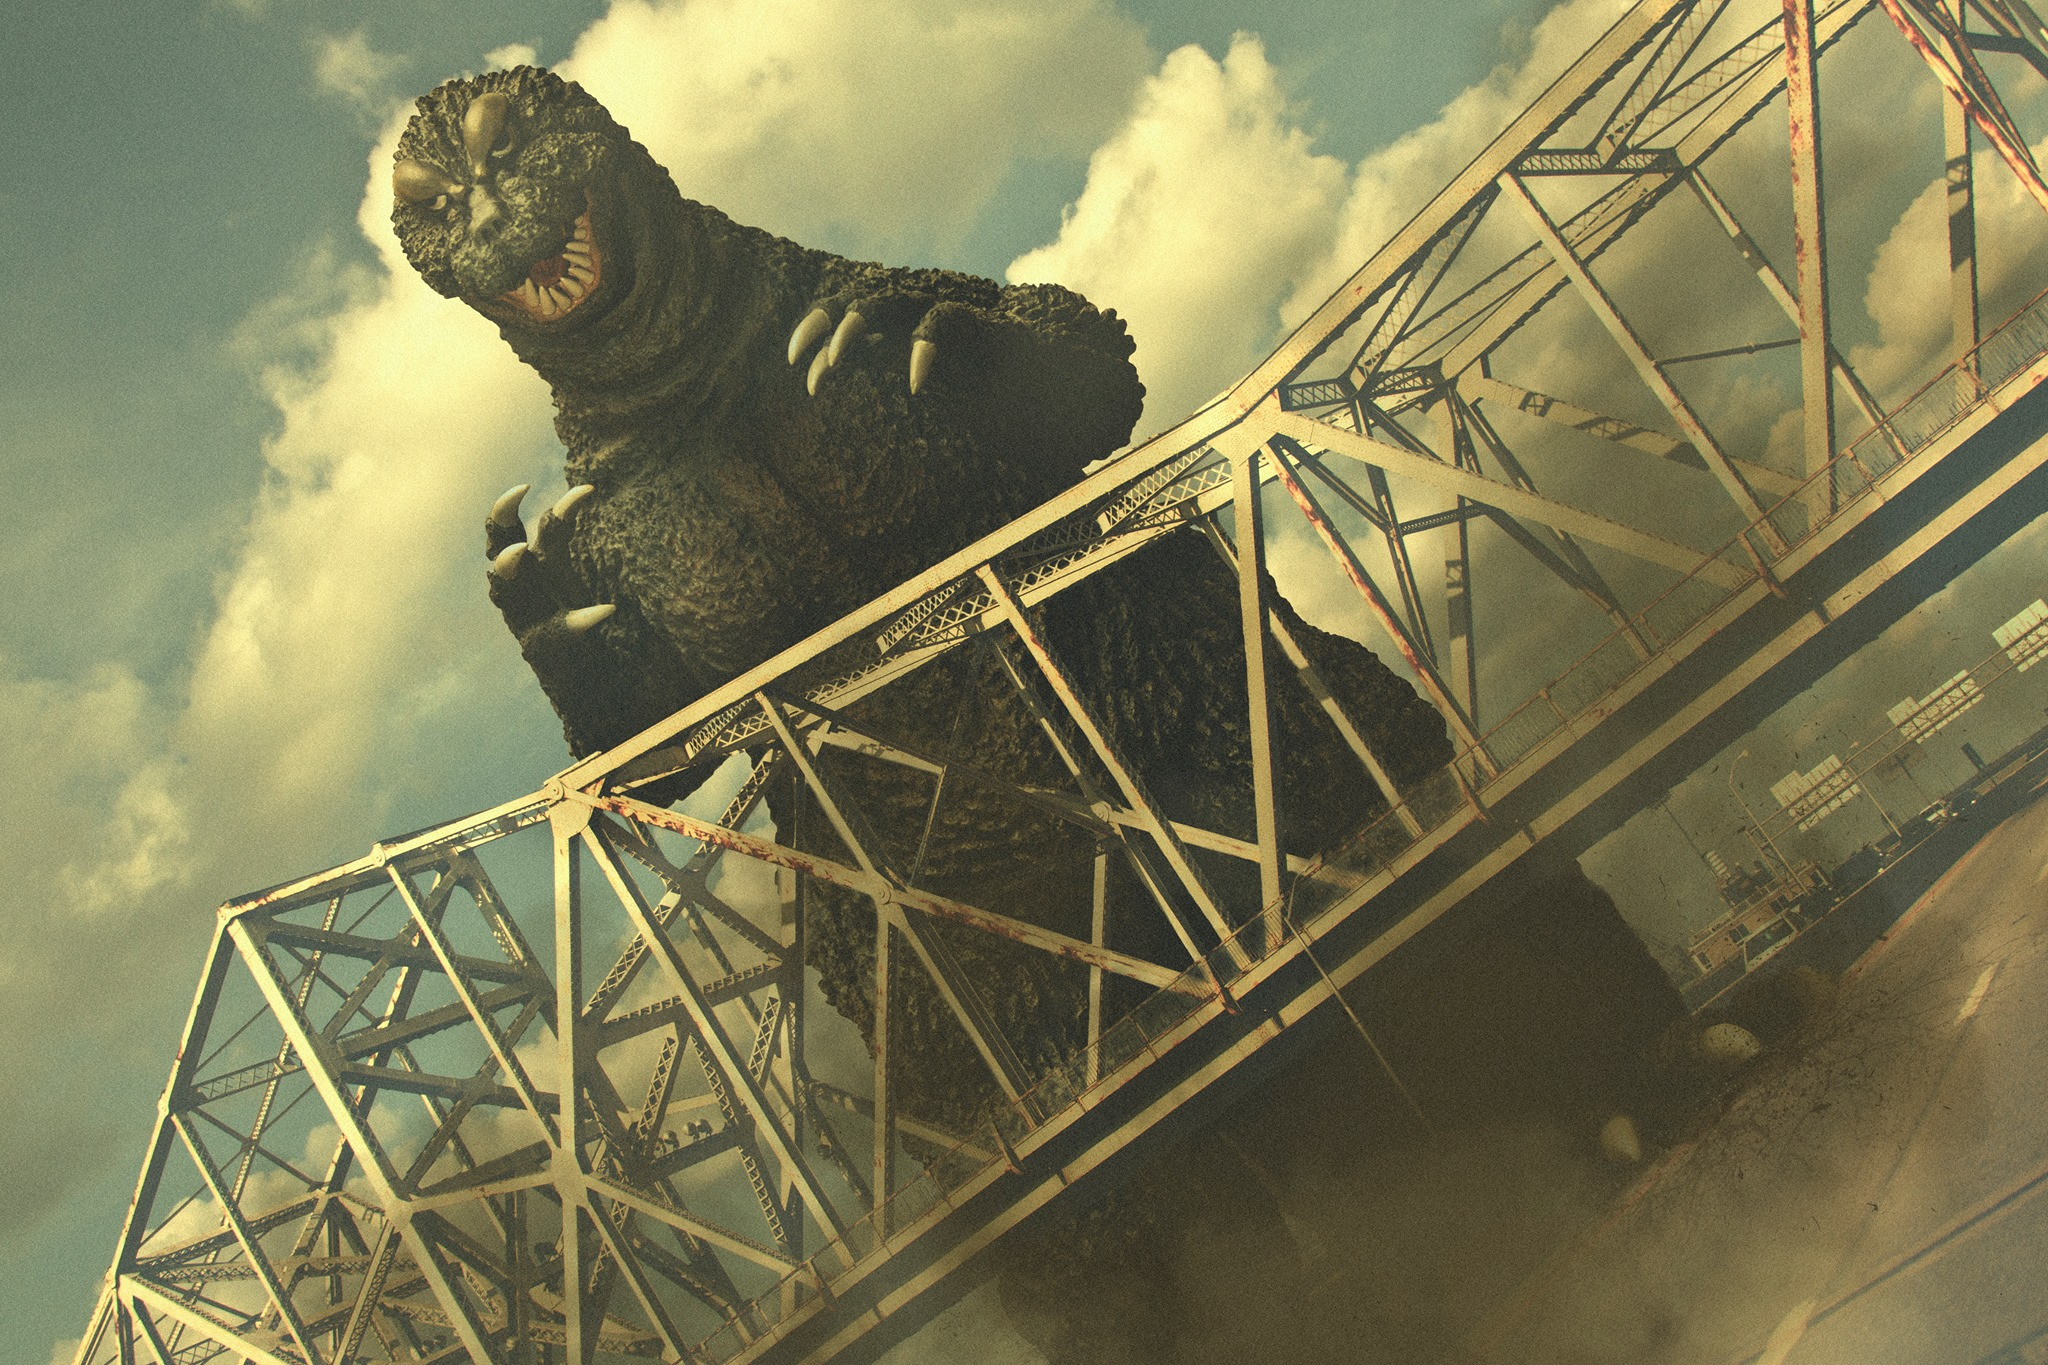 Photo composite of an X-Plus Godzilla 1964 with a real world bridge by Stephen Robert Staley.